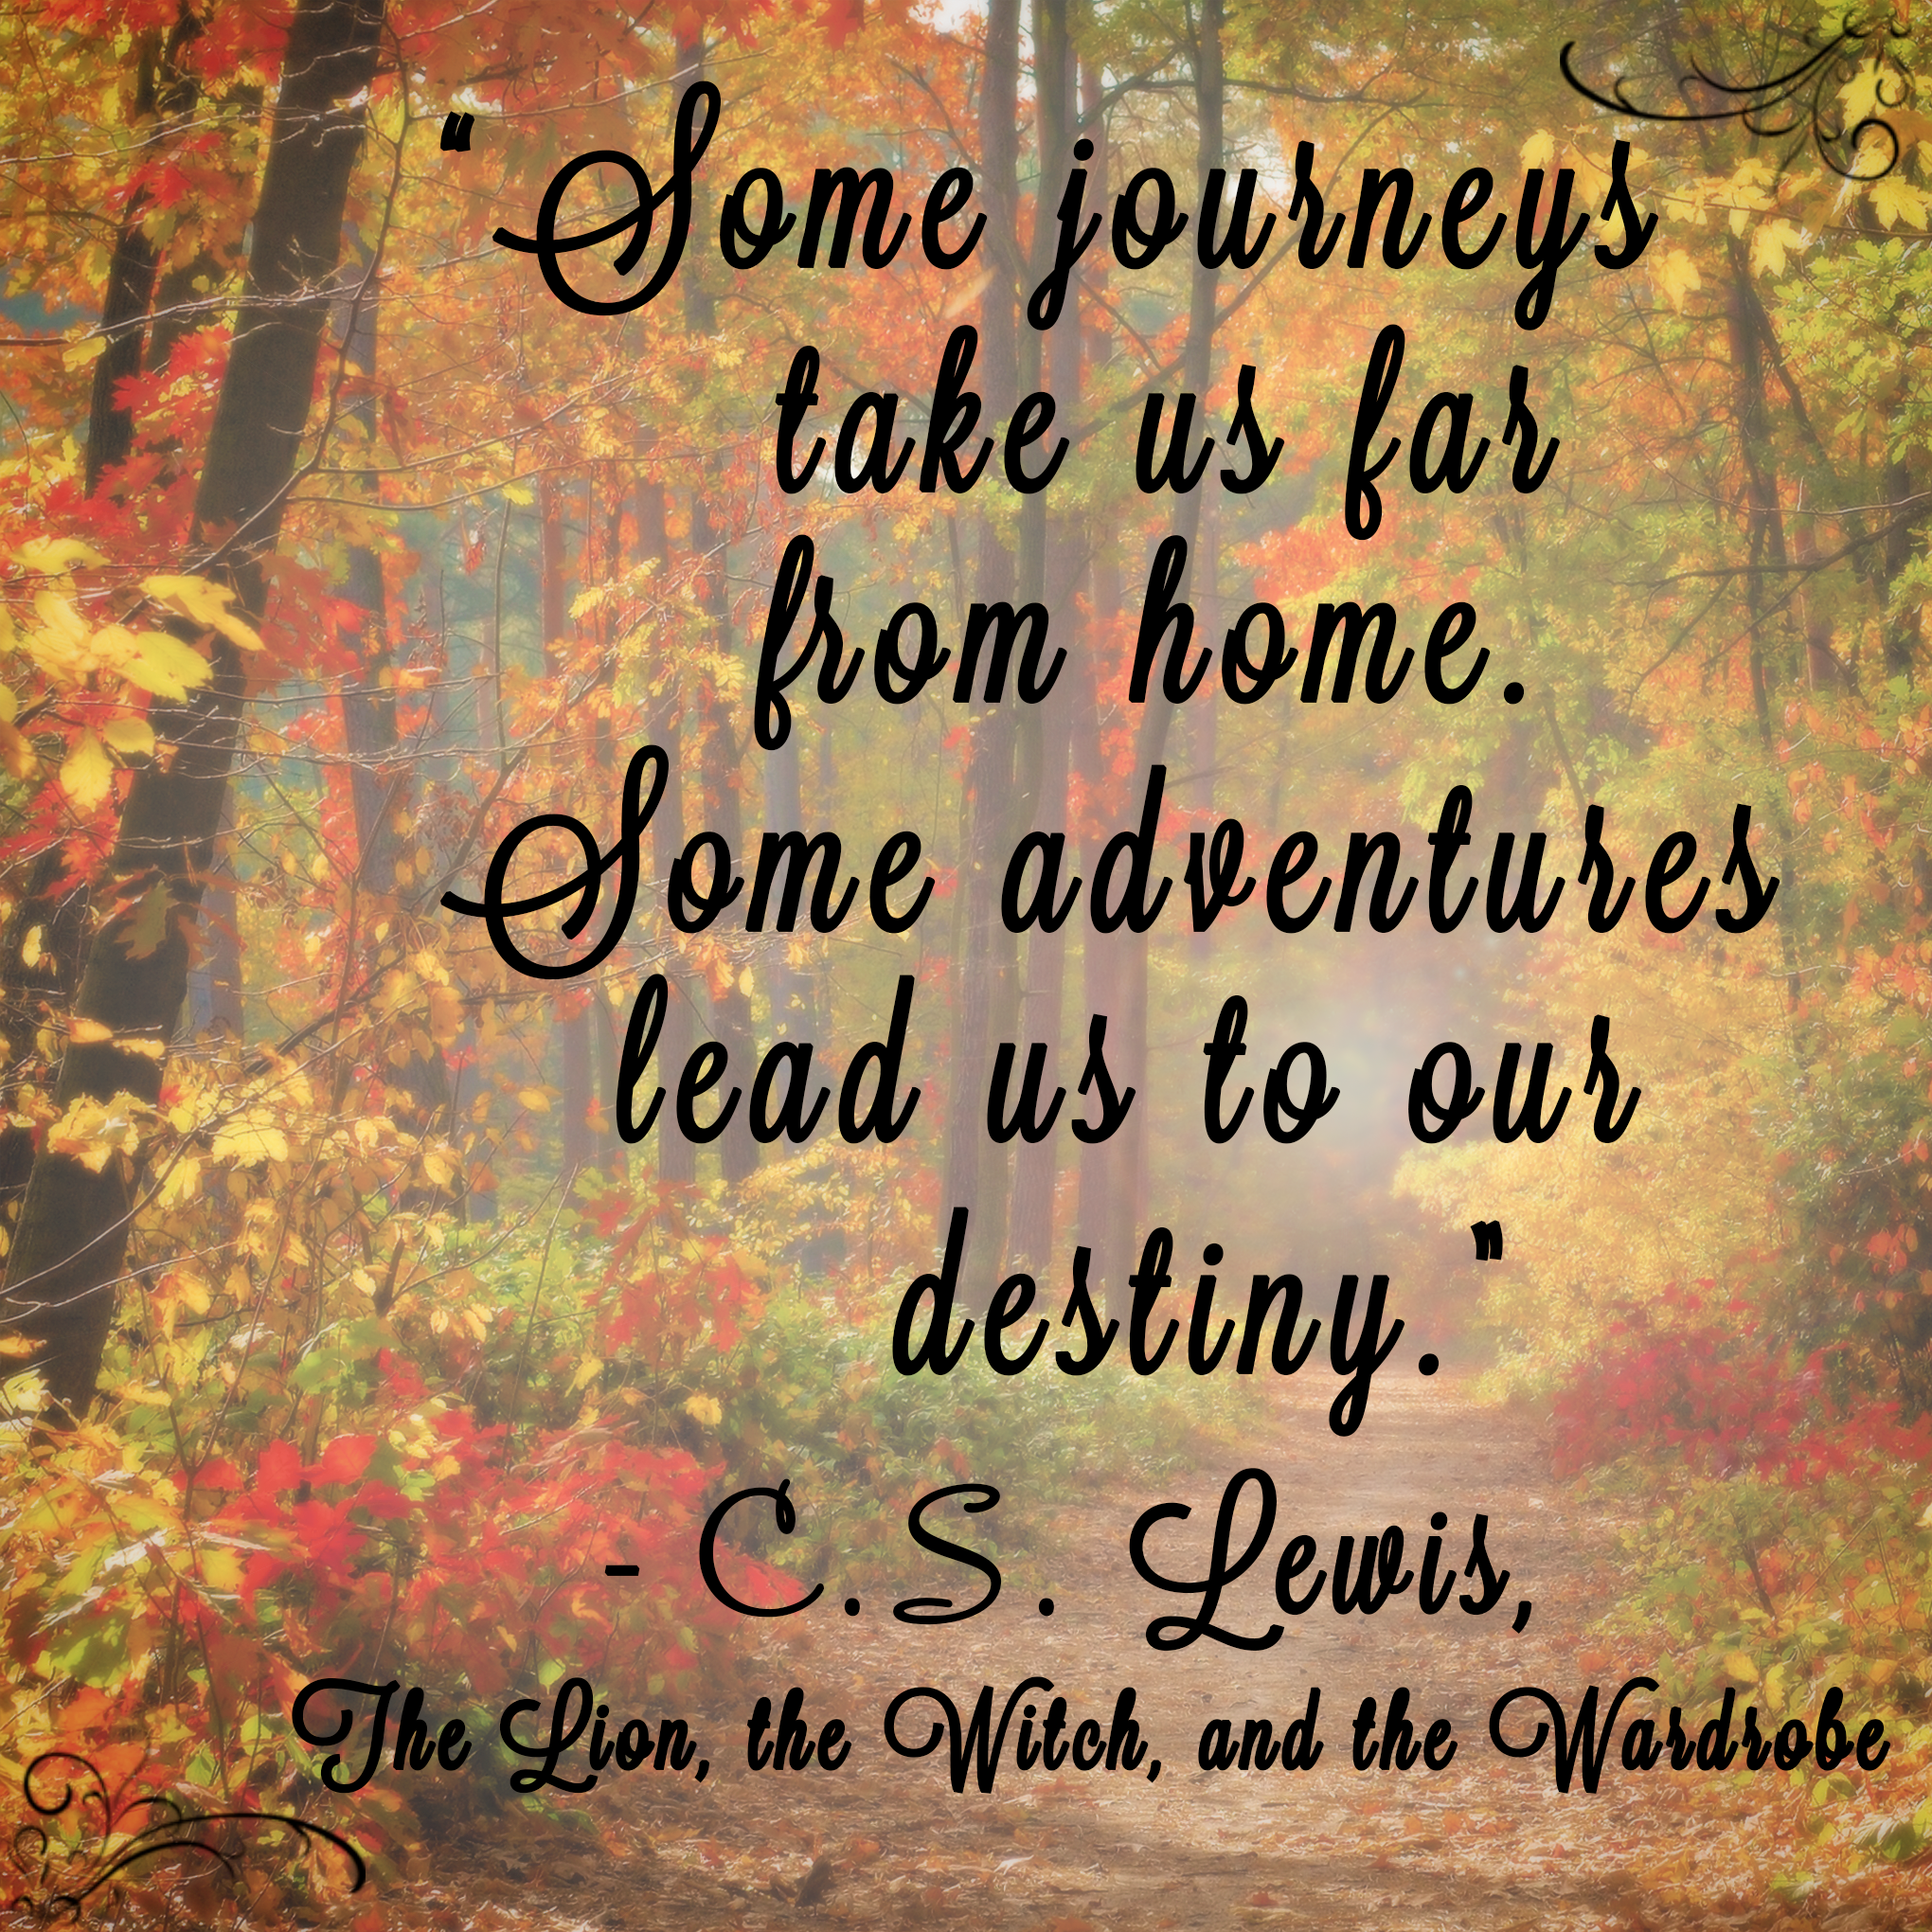 """""""Some journeys take us far from home. Some adventures lead us to our destiny."""" -C.S. Lewis  #thelionthewitchandthewardrobe #CSLewis #Narnia"""